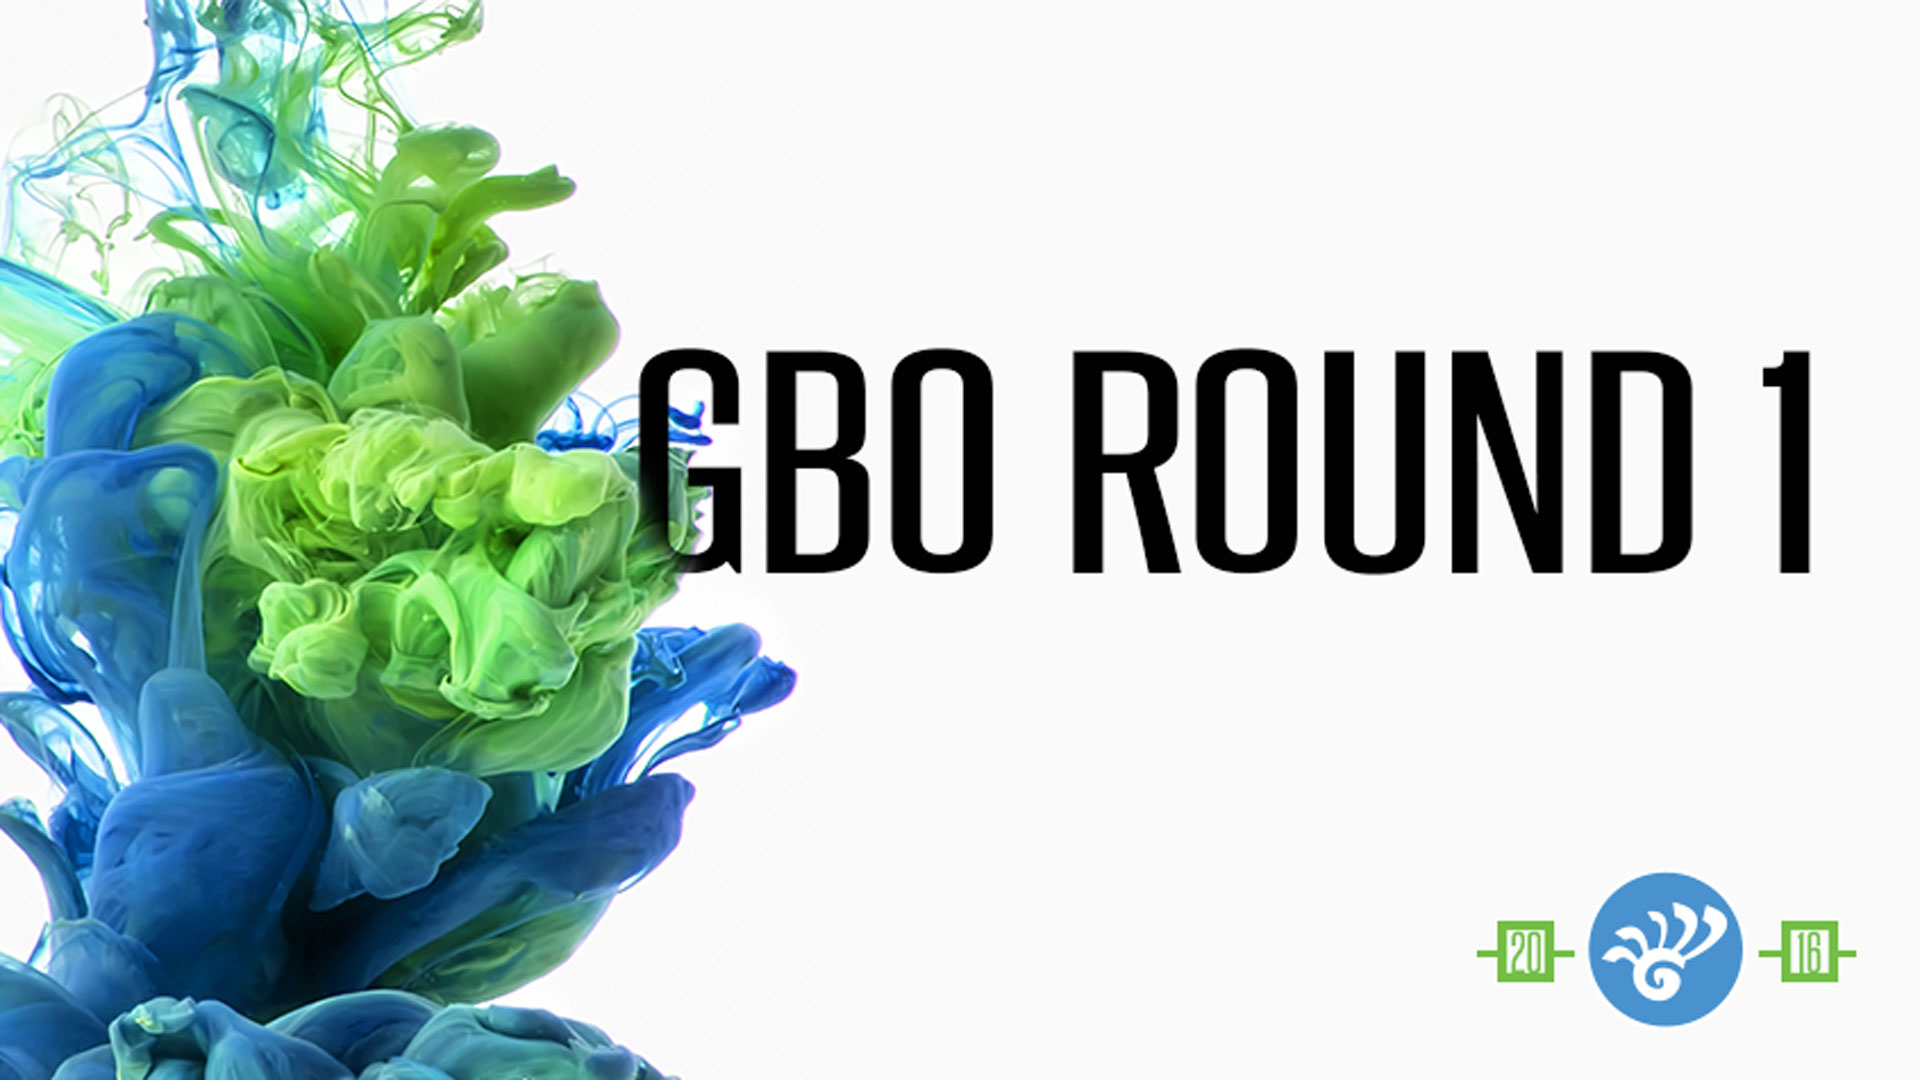 GBO Round 1 Live Coverage